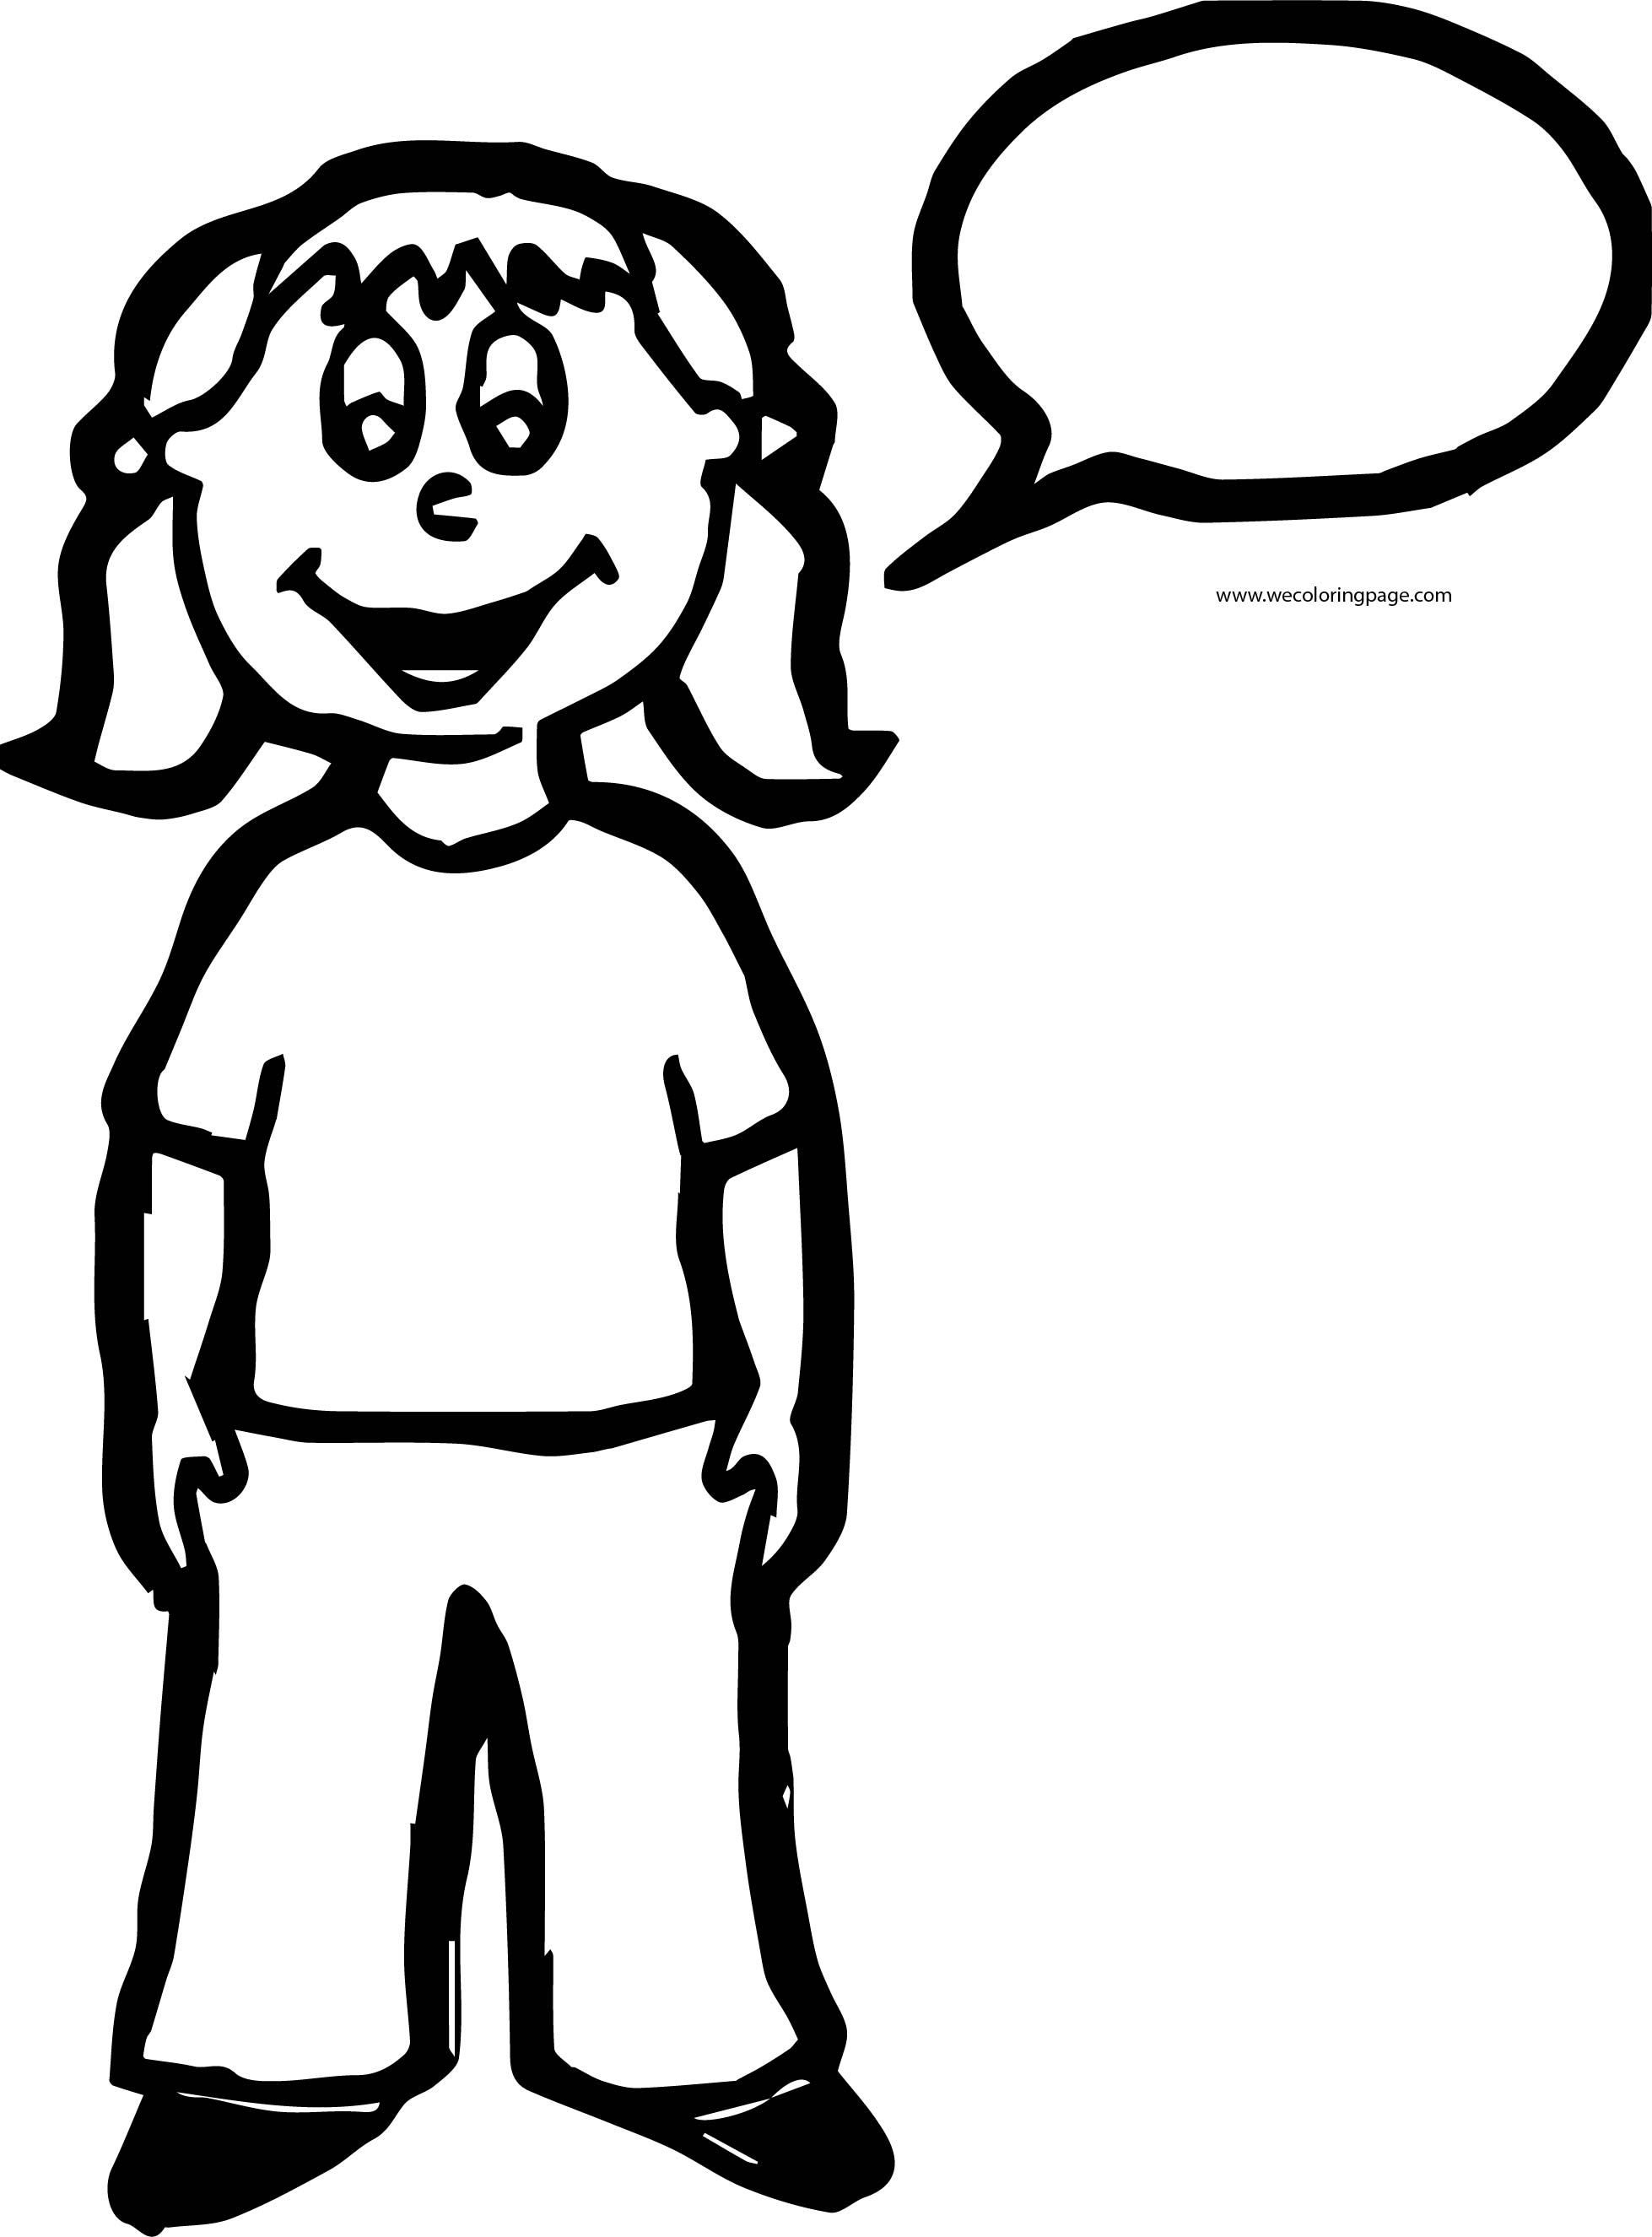 English Teacher Student Speech Balloon Coloring Page